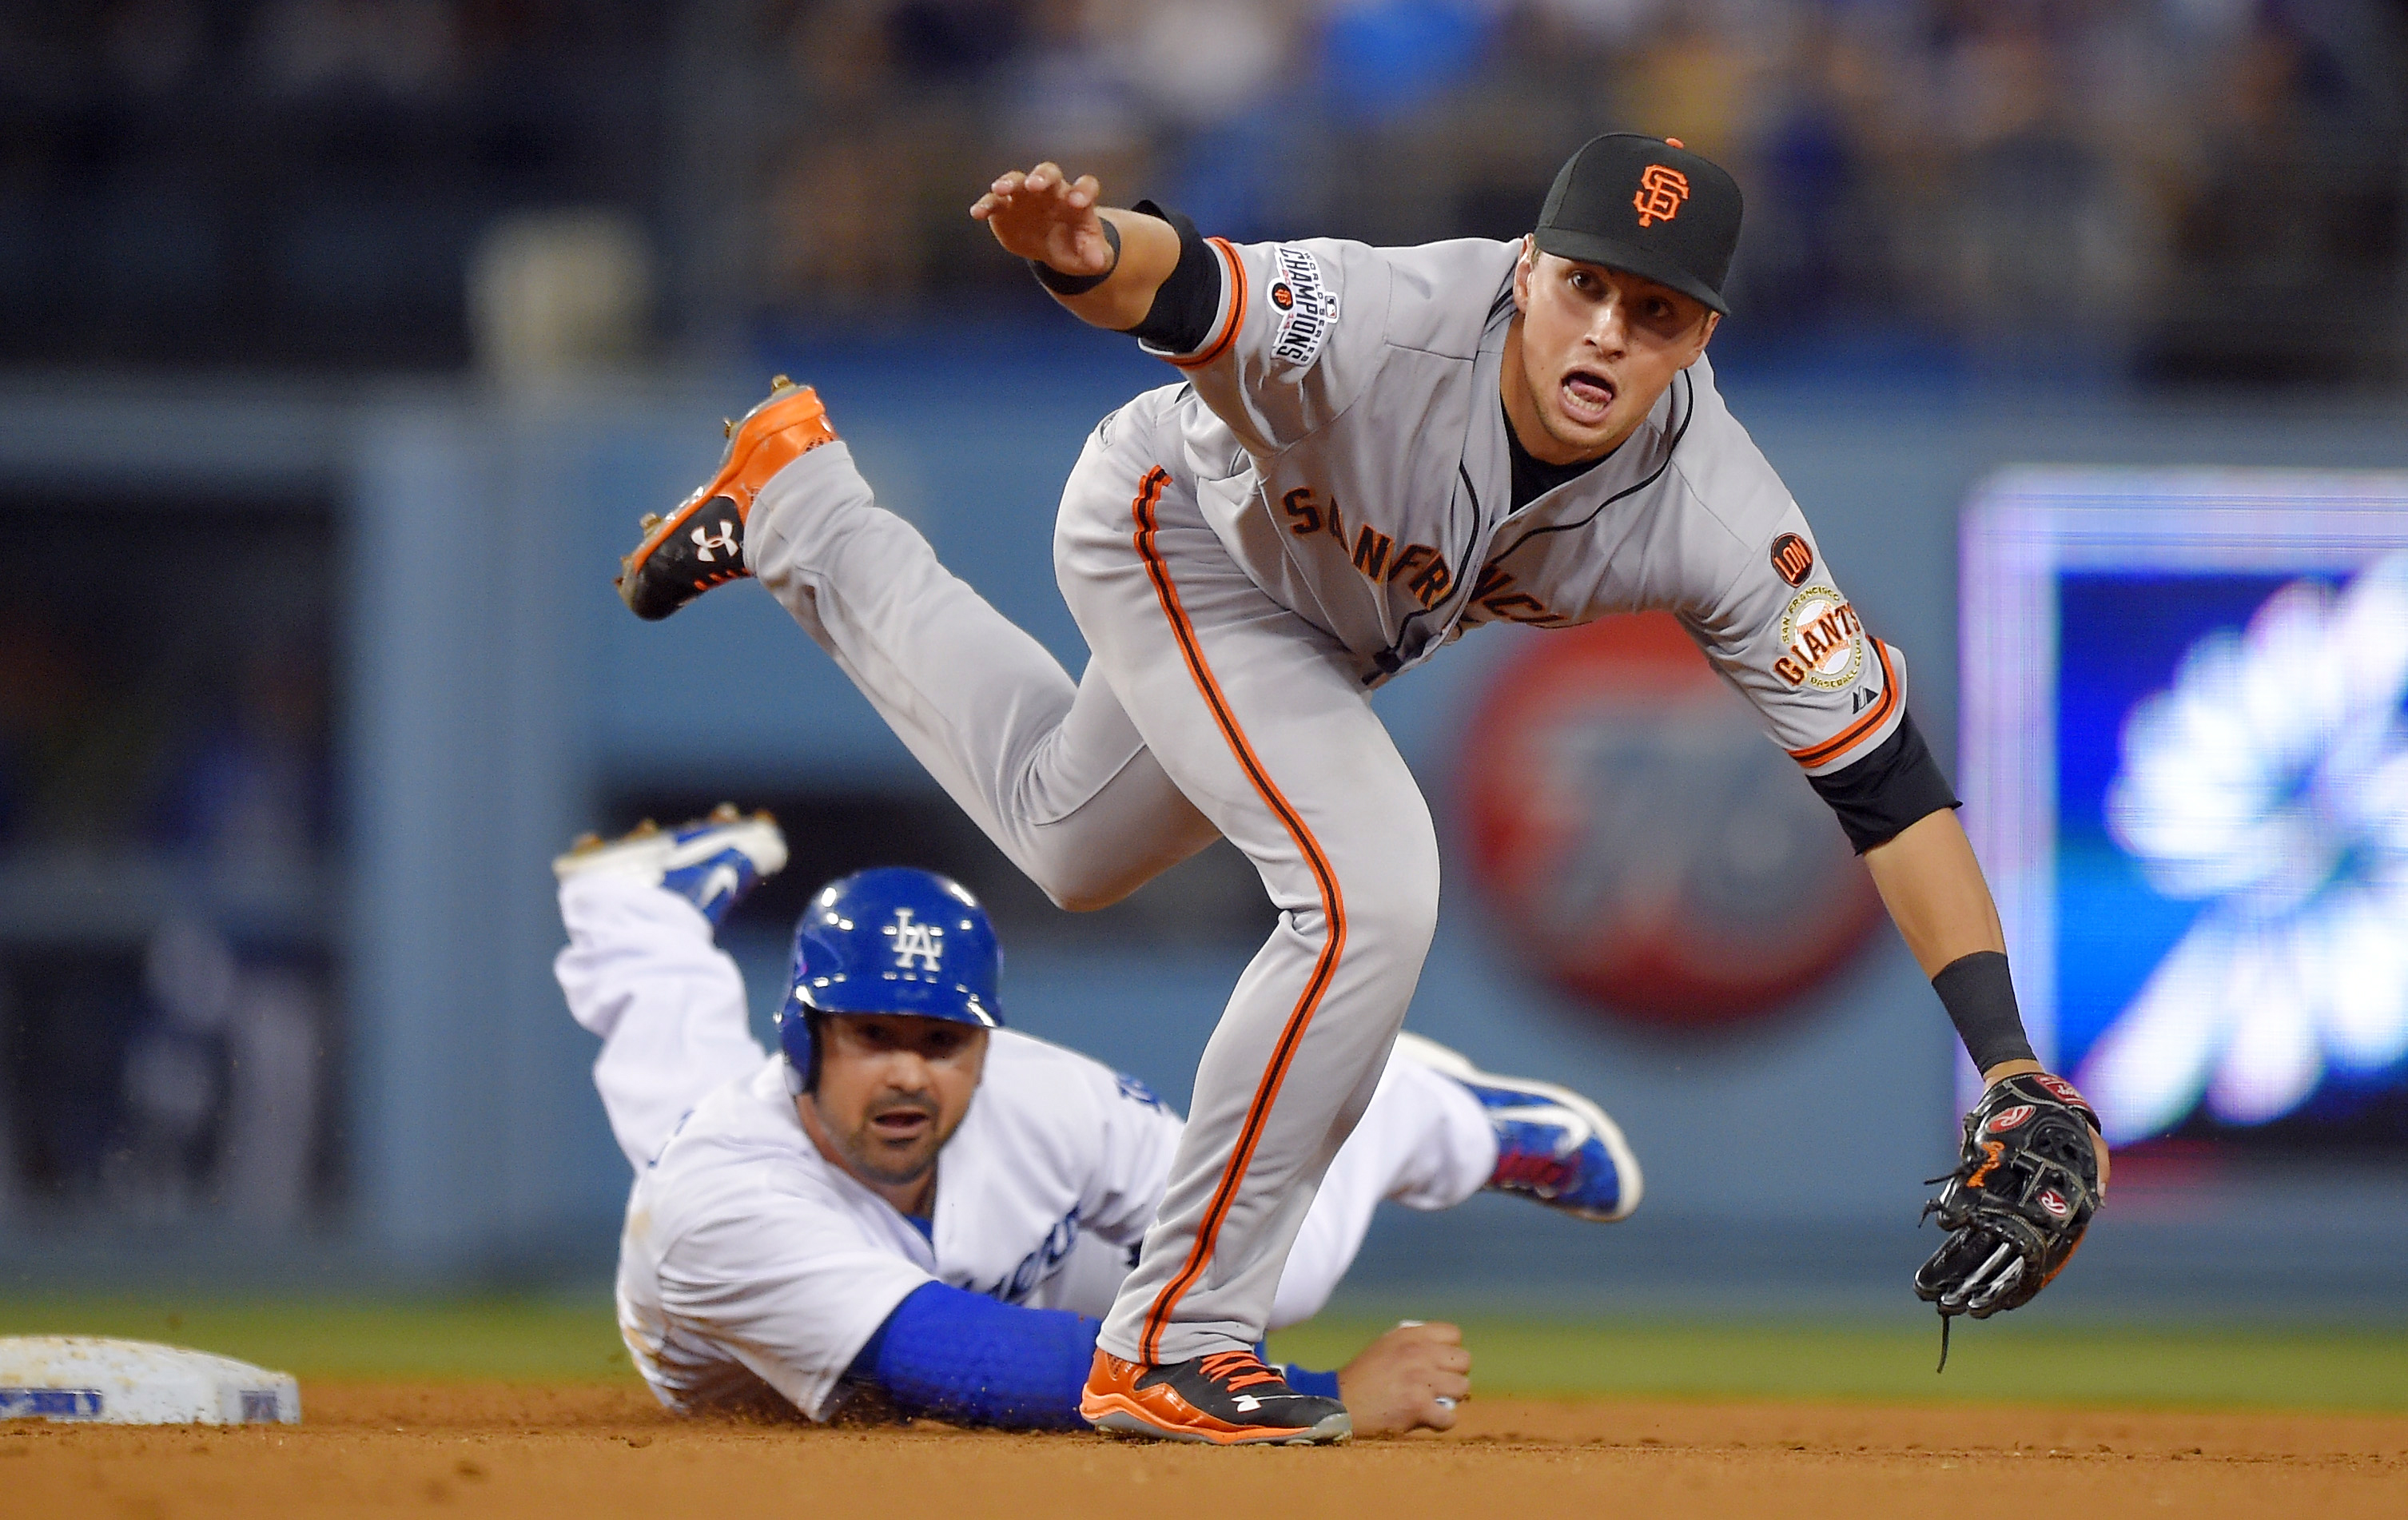 FILE - In this April 29, 2015 file photo, Los Angeles Dodgers' Adrian Gonzalez is forced out at second as San Francisco Giants second baseman Joe Panik throws to first in baseball game in Los Angeles. With his troublesome back healthy and pain-free at las